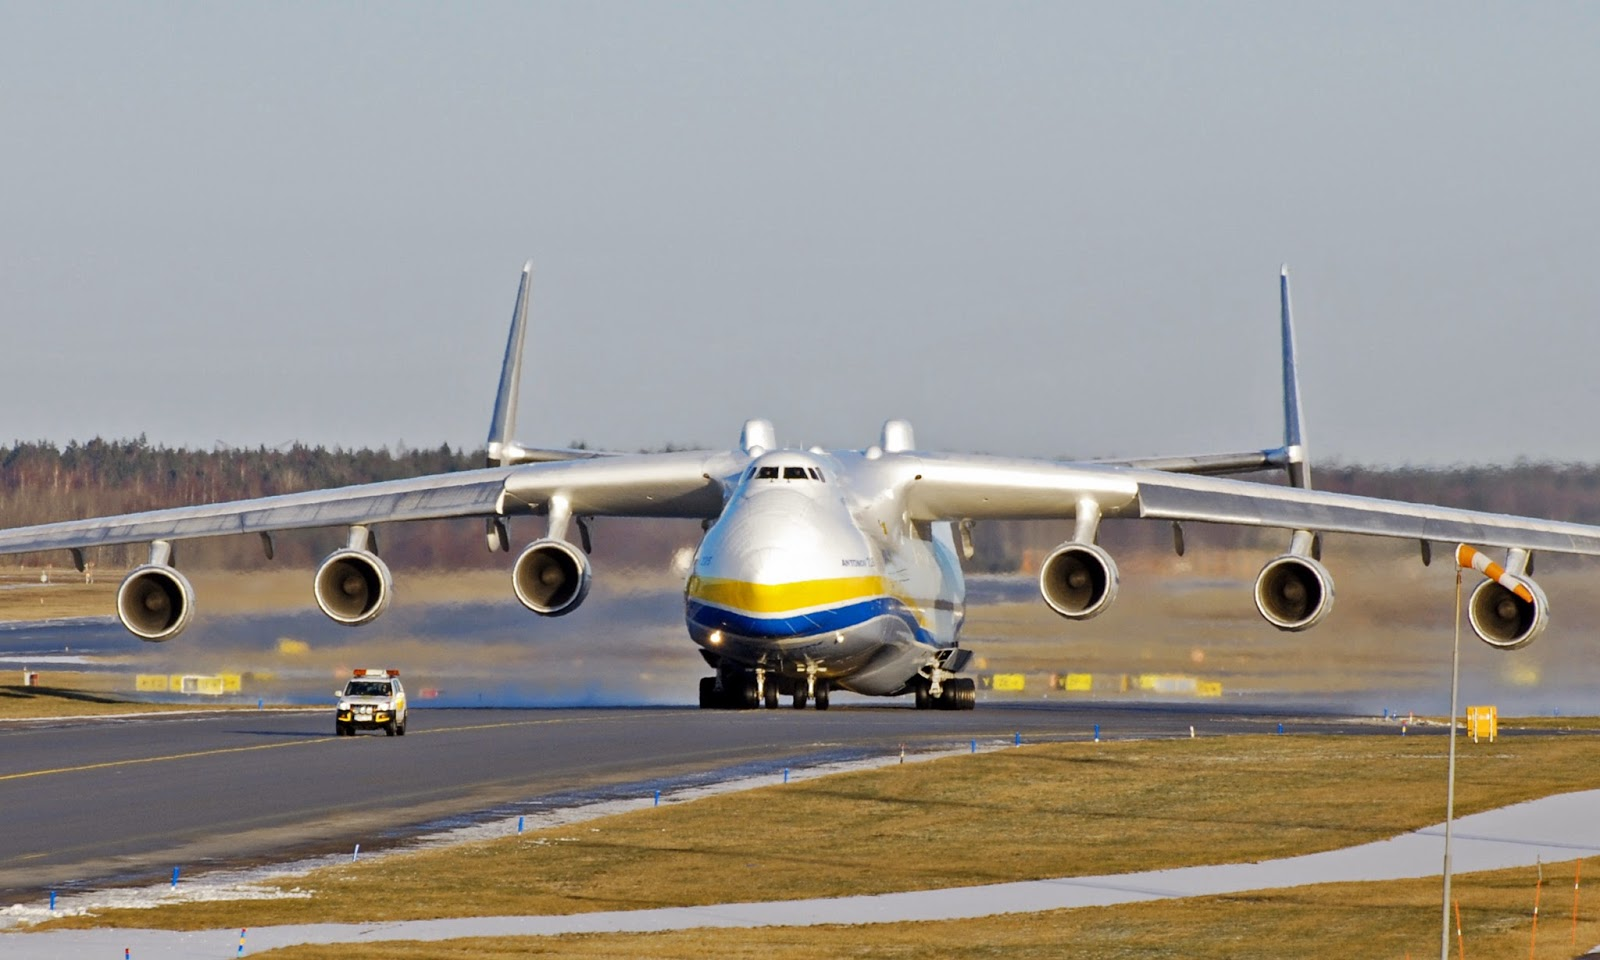 antonov 225 cargo flight hd wallpapers | hd wallpapers (high